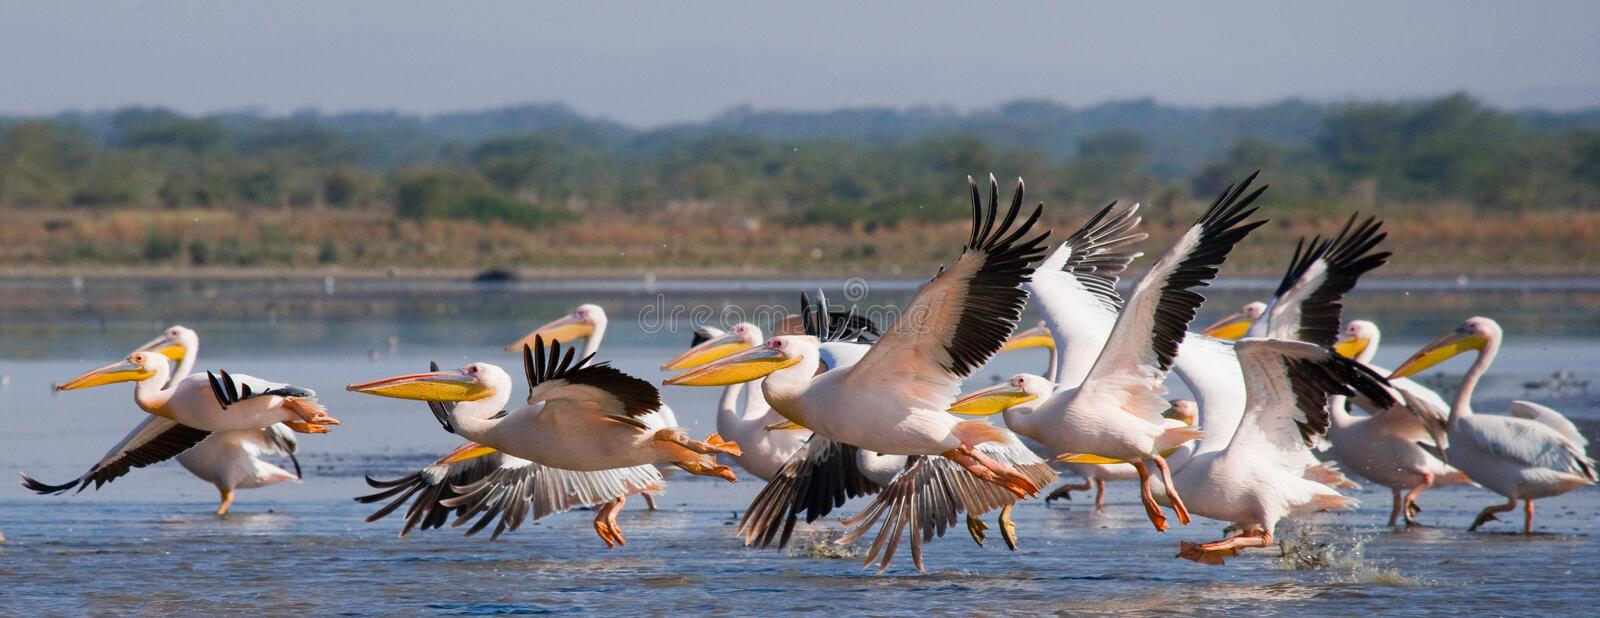 A flock of pelicans taking off from the water. Lake Nakuru. Kenya. Africa. stock image